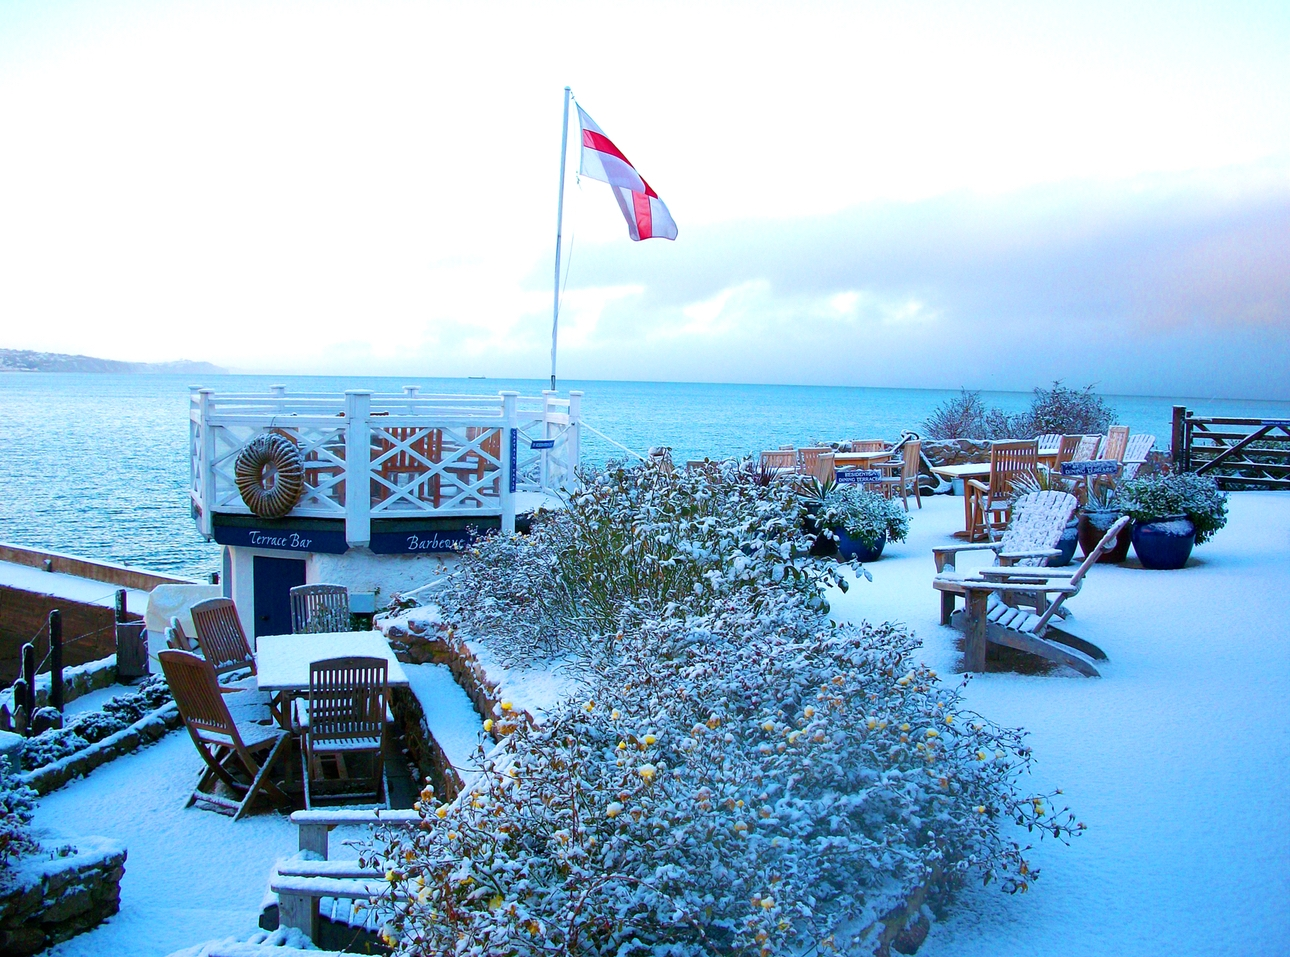 Curl up at award-winning The Cary Arms & Spa in Babbacombe Bay Devon this Christmas